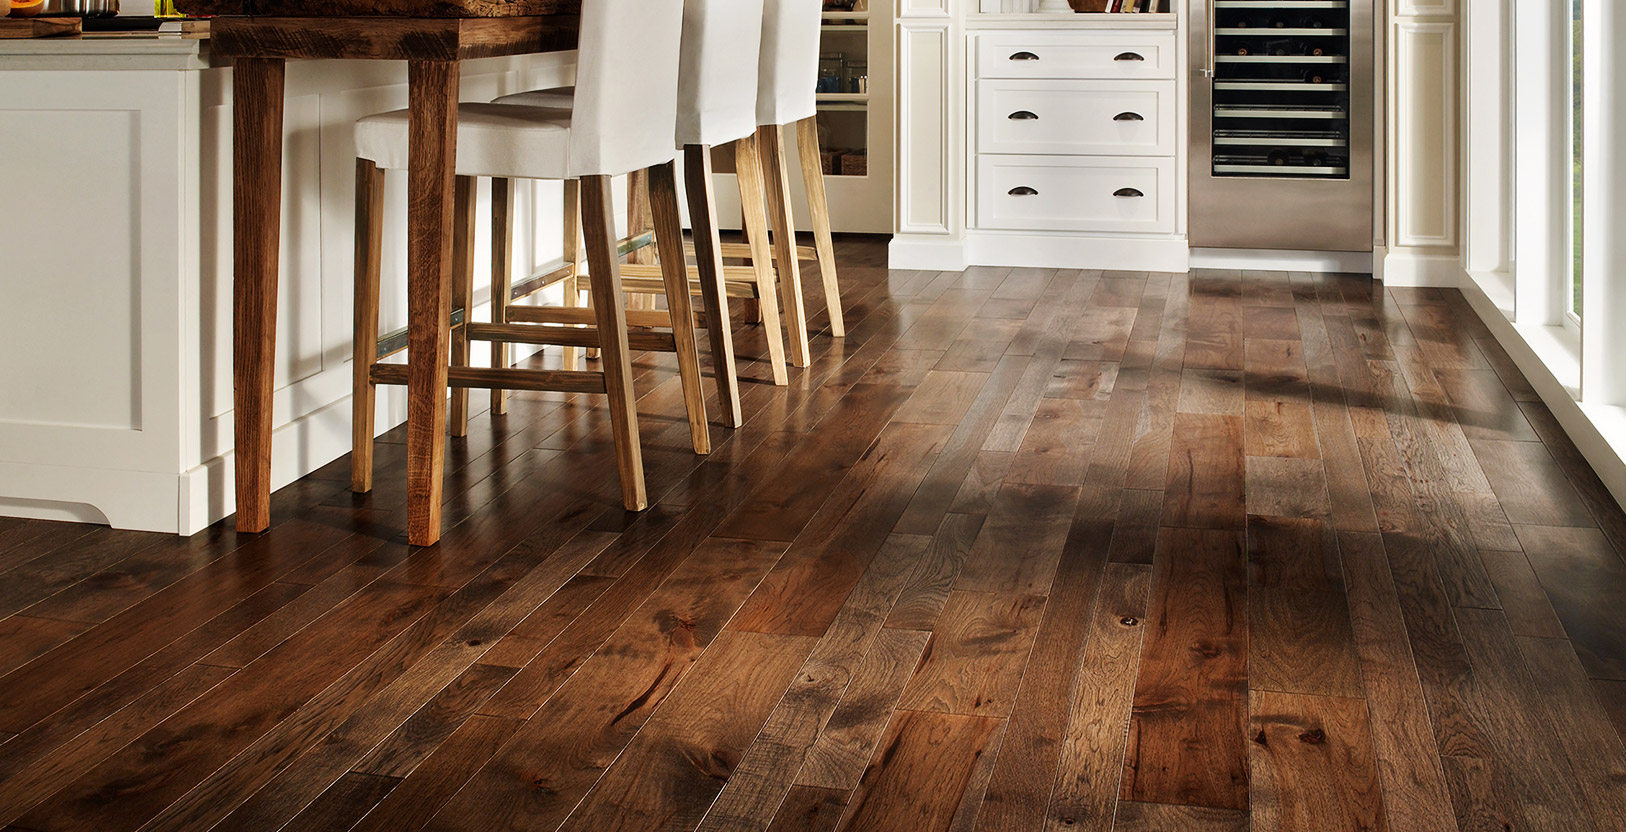 Vinyl Flooring Kitchens Pros And Cons